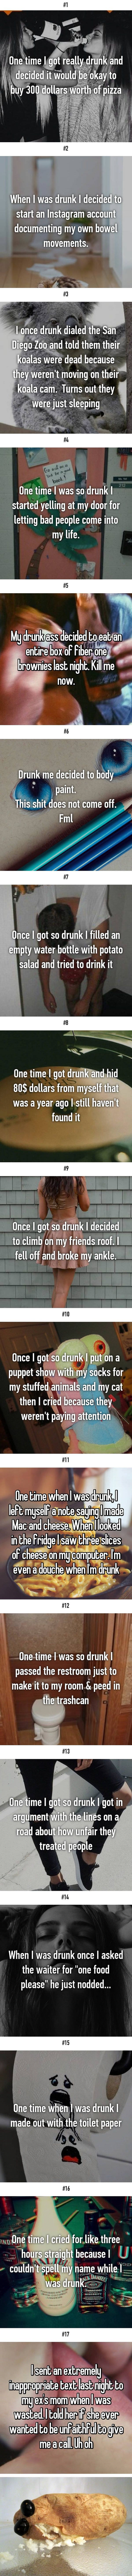 People confess their dumbest drunk decisions